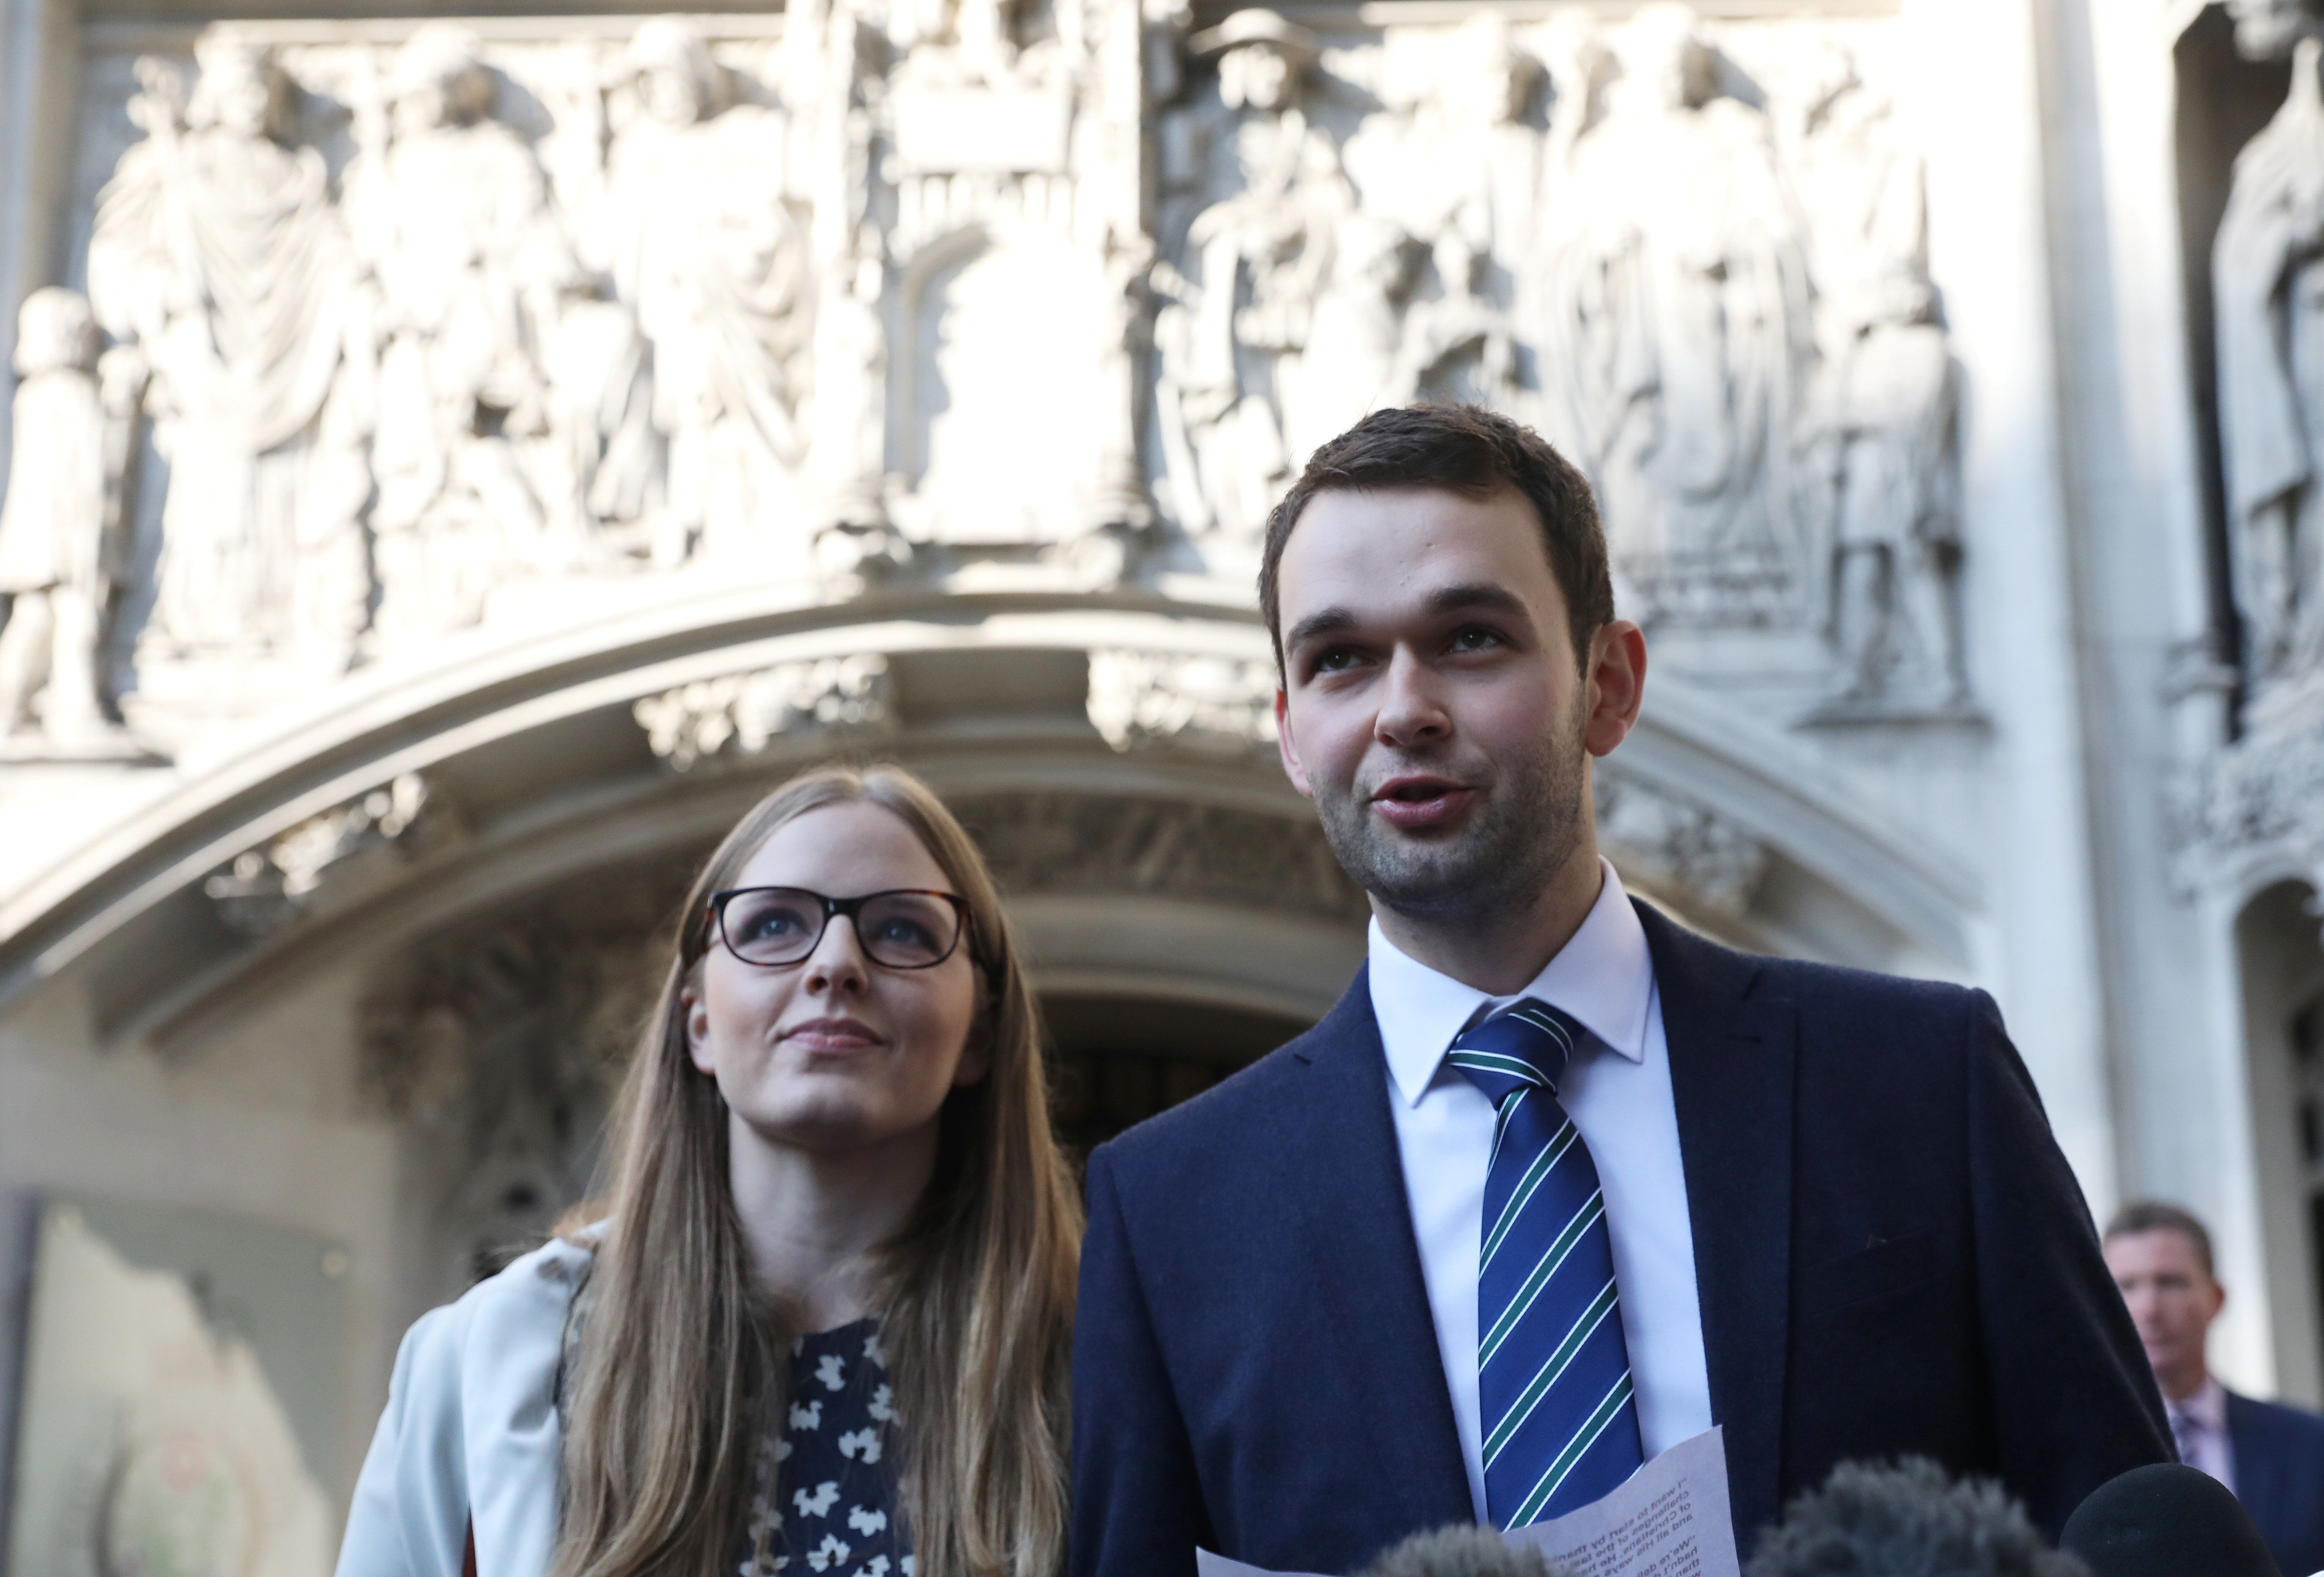 Daniel and Amy McArthur, who own Ashers Bakery in Belfast, speak as they leave the Supreme Court in London on Oct. 10.